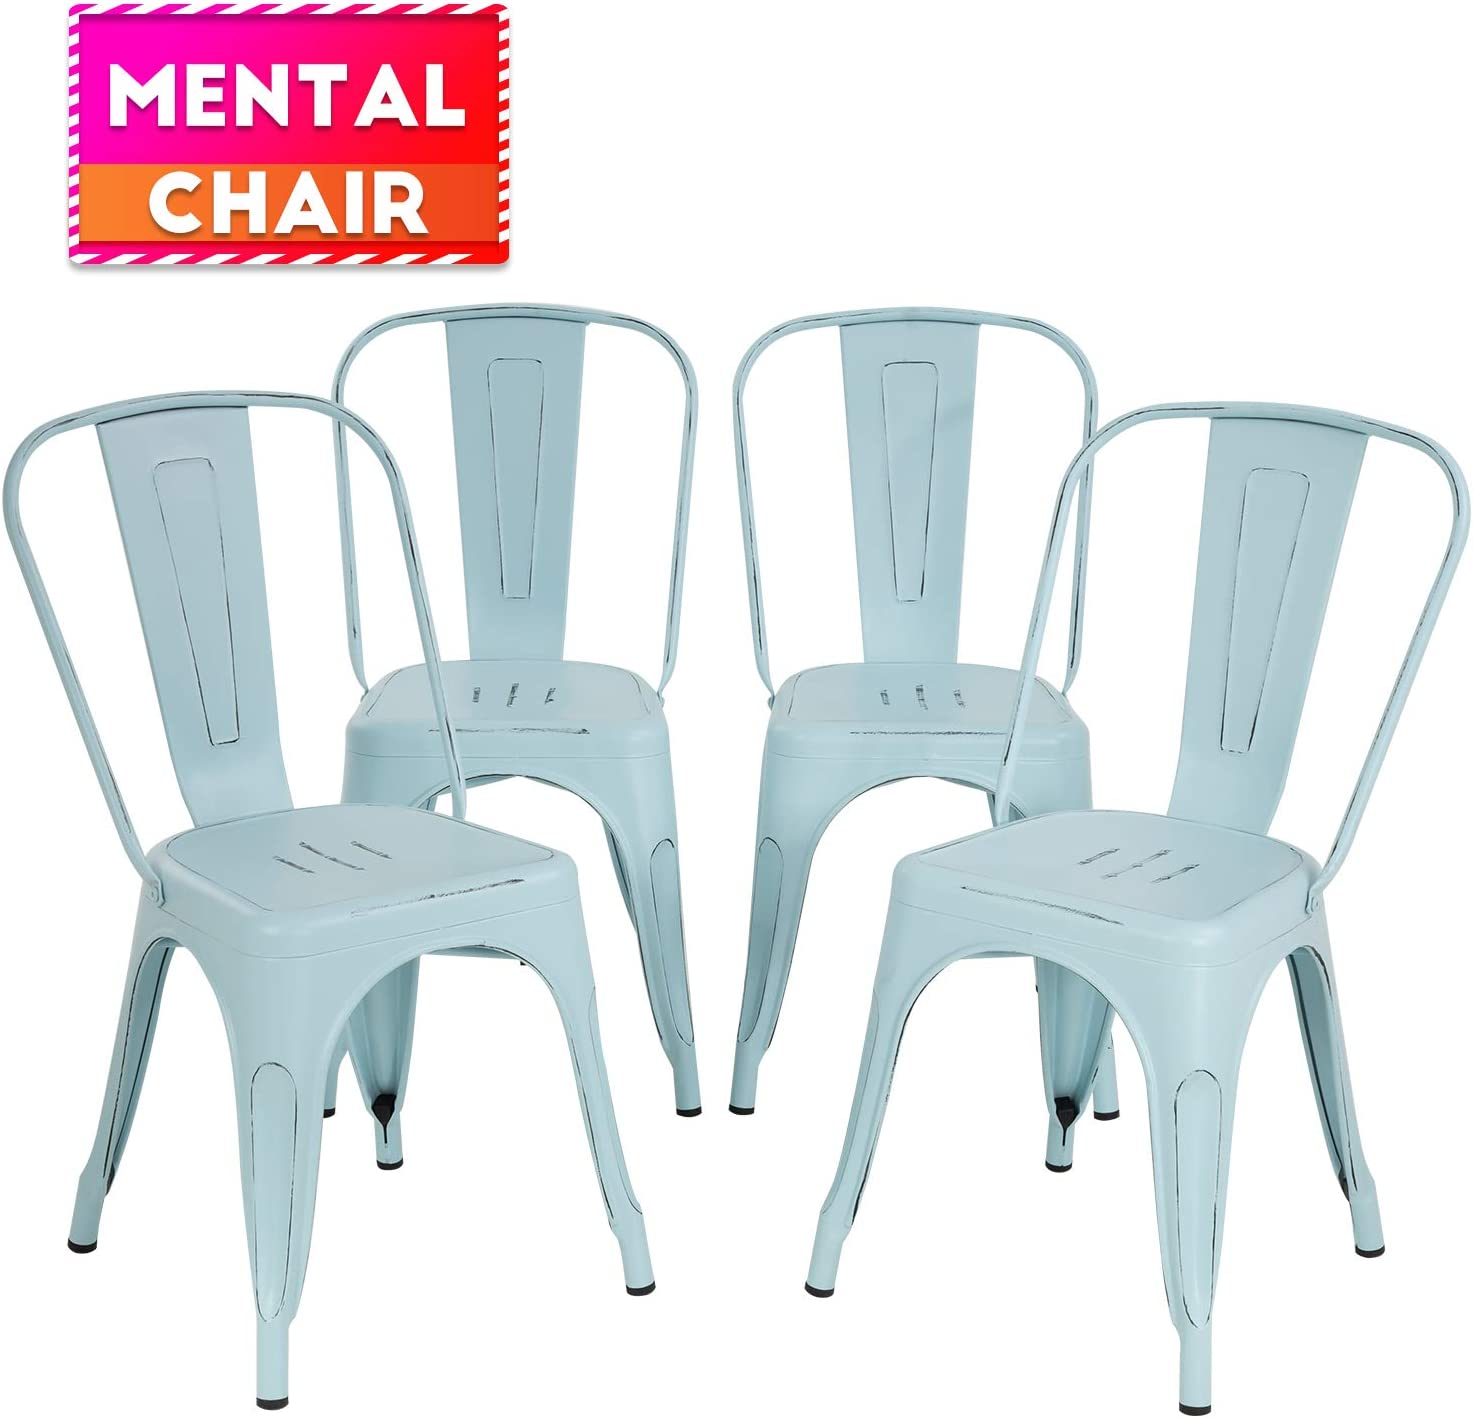 Metal Dining Chairs Set of 4 Indoor Outdoor Chairs Patio Chairs Stackable Chair Restaurant Chair 18 Inch Seat Height Chic Metal Kitchen Chairs Trattoria Chairs Metal Tolix Side Bar Chairs